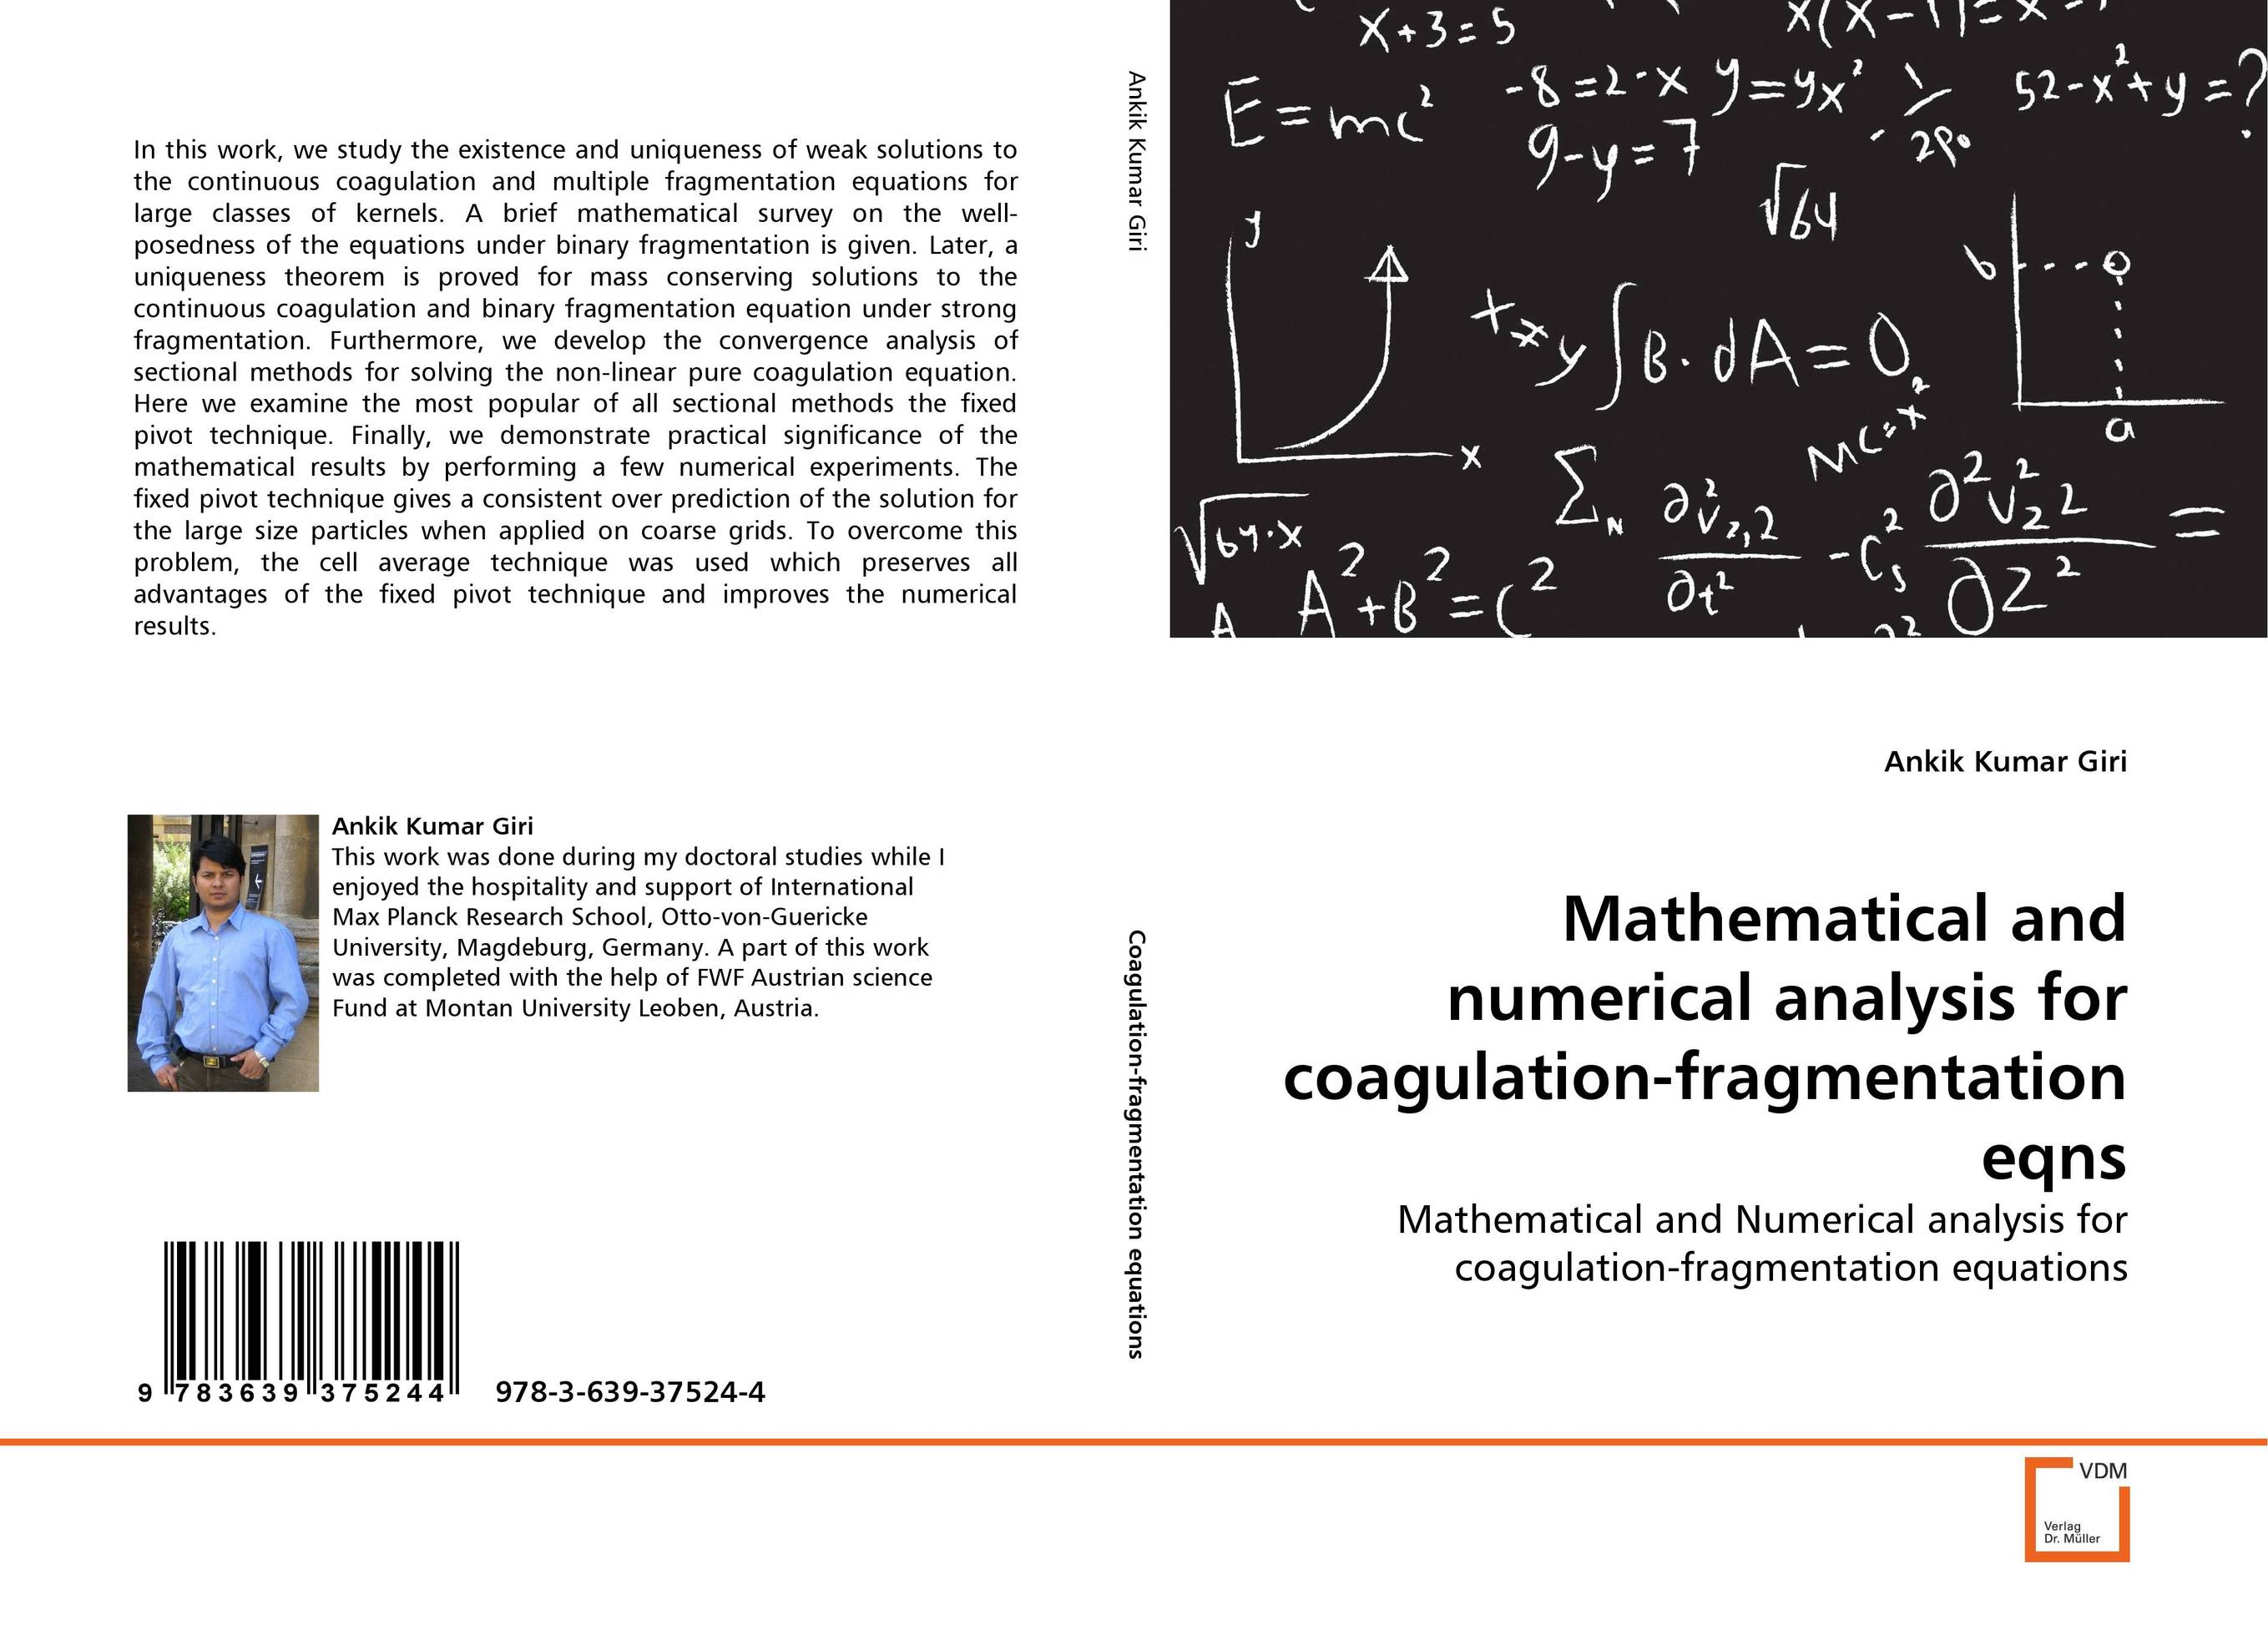 Mathematical and numerical analysis for coagulation-fragmentation eqns analytical and numerical approximation solution of bio heat equation